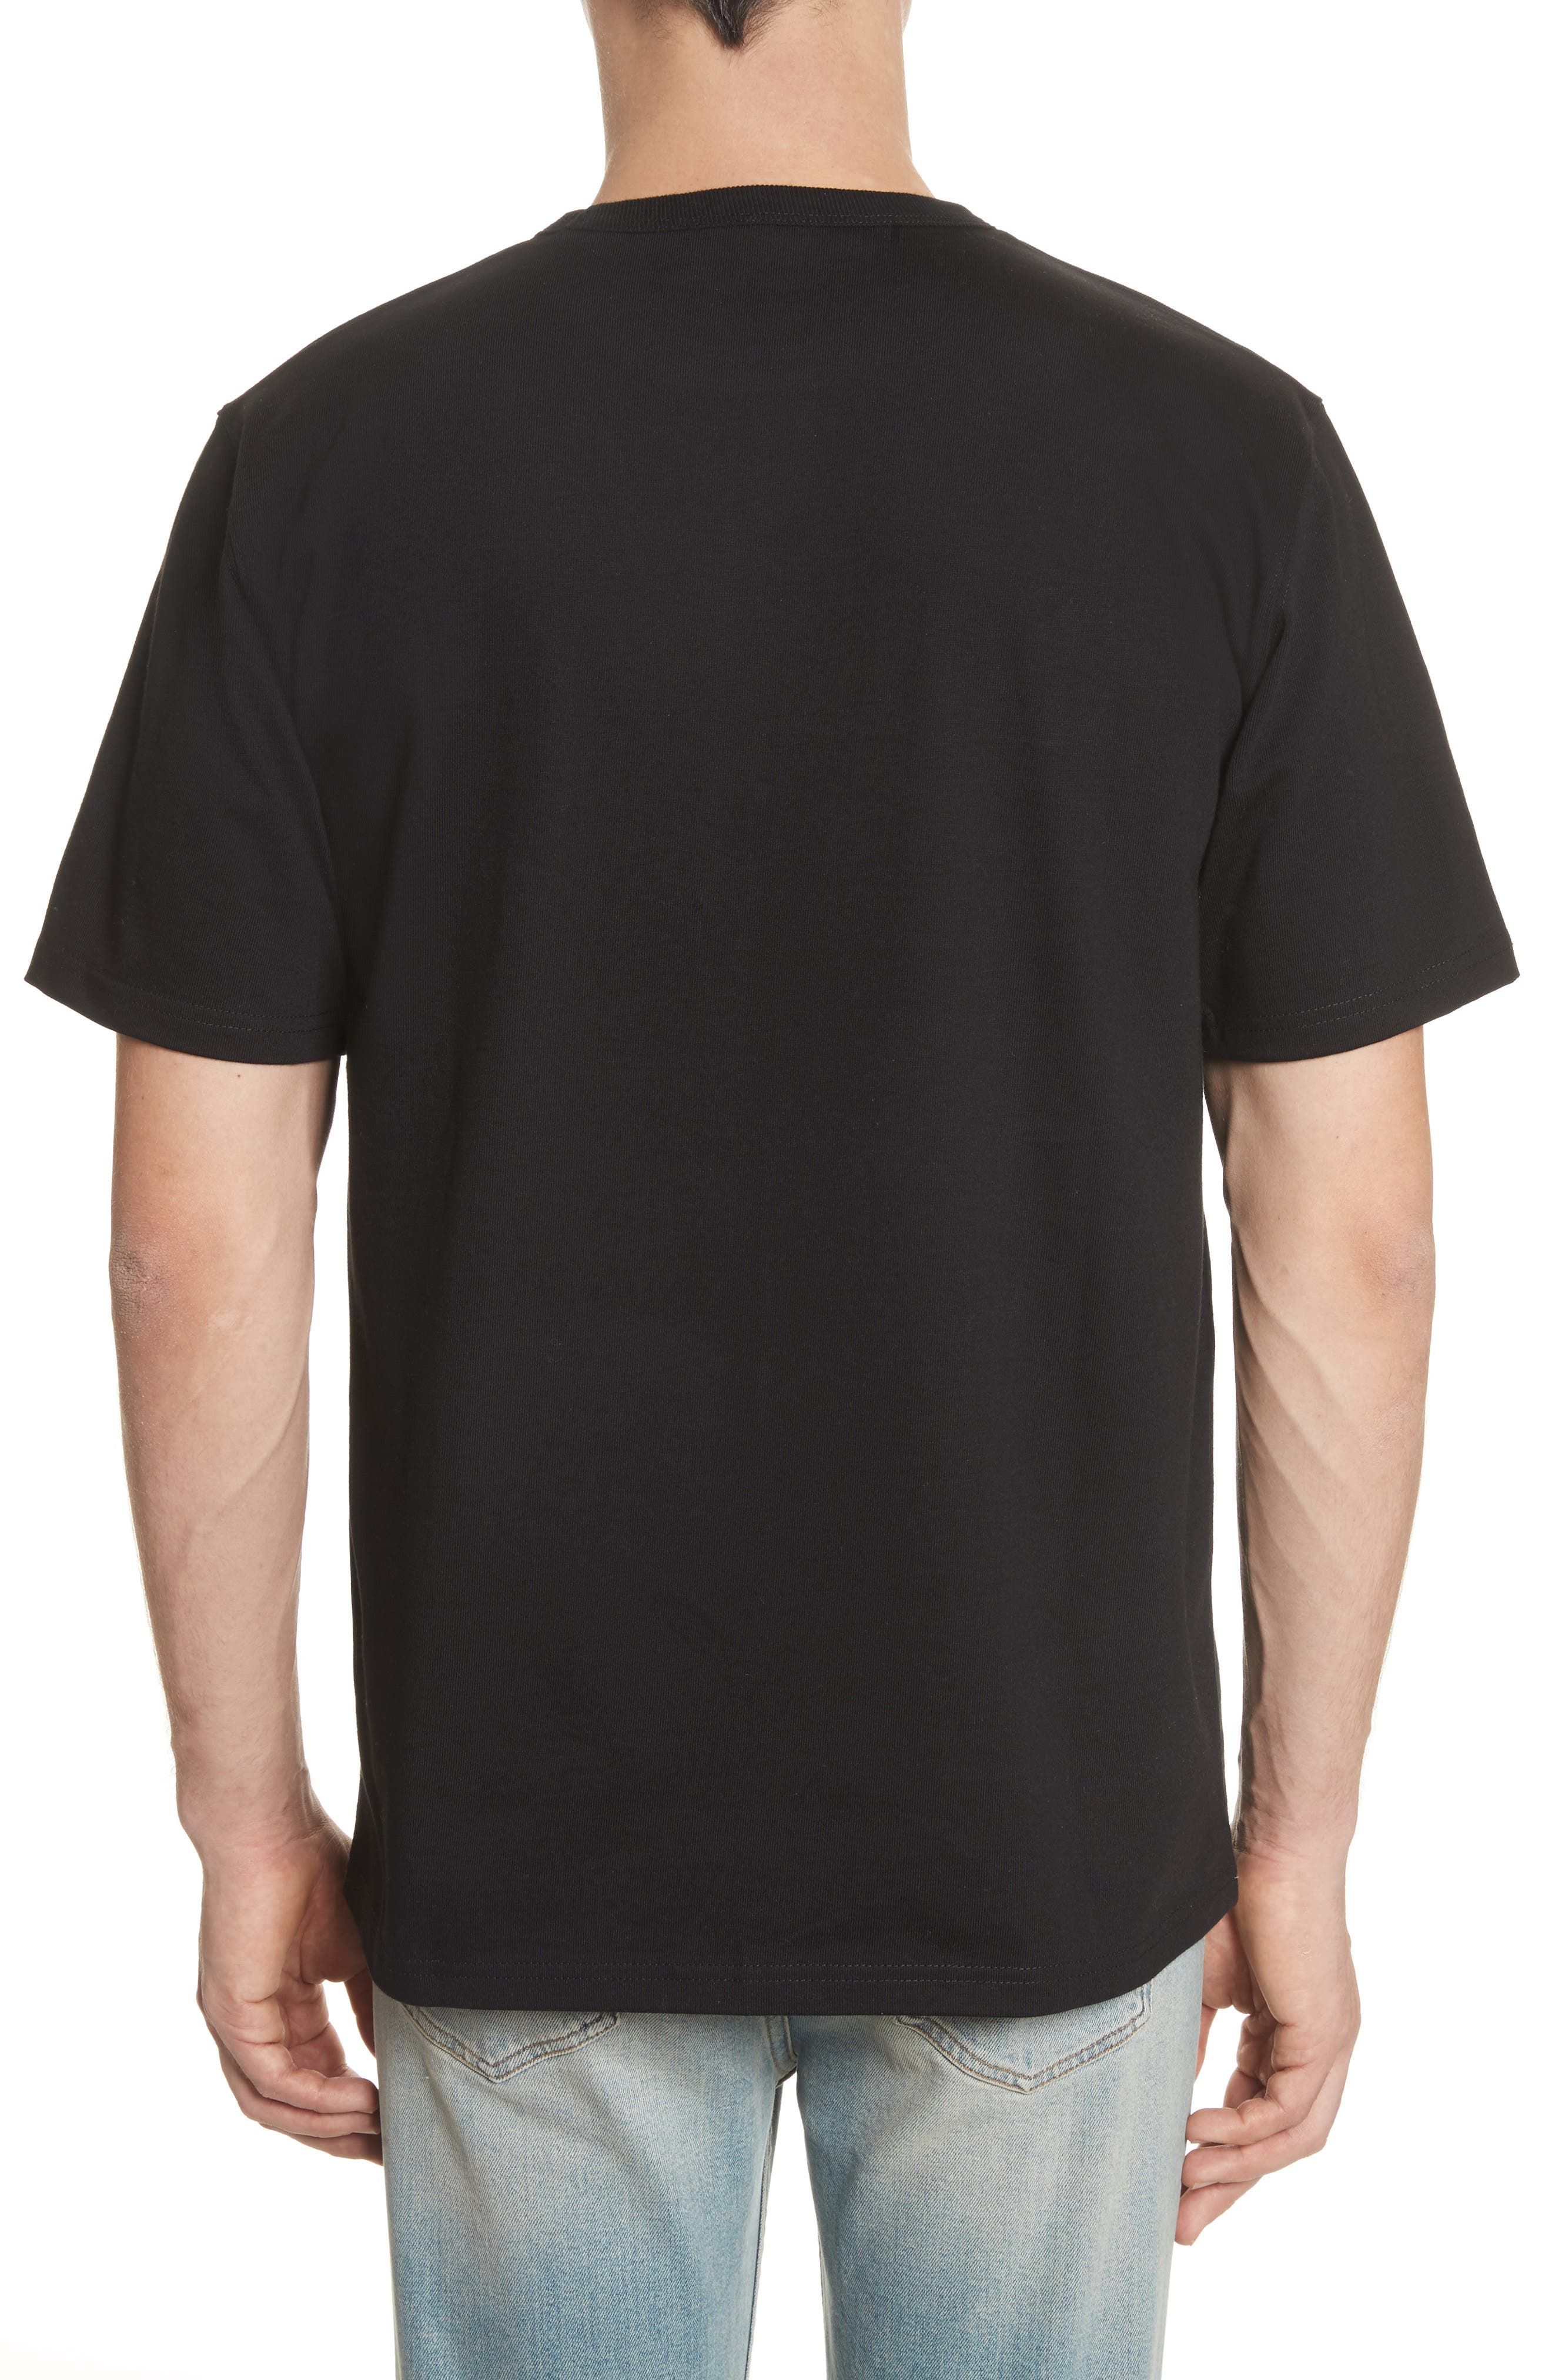 Stray Graphic T-Shirt,                             Alternate thumbnail 2, color,                             Black/ Wax